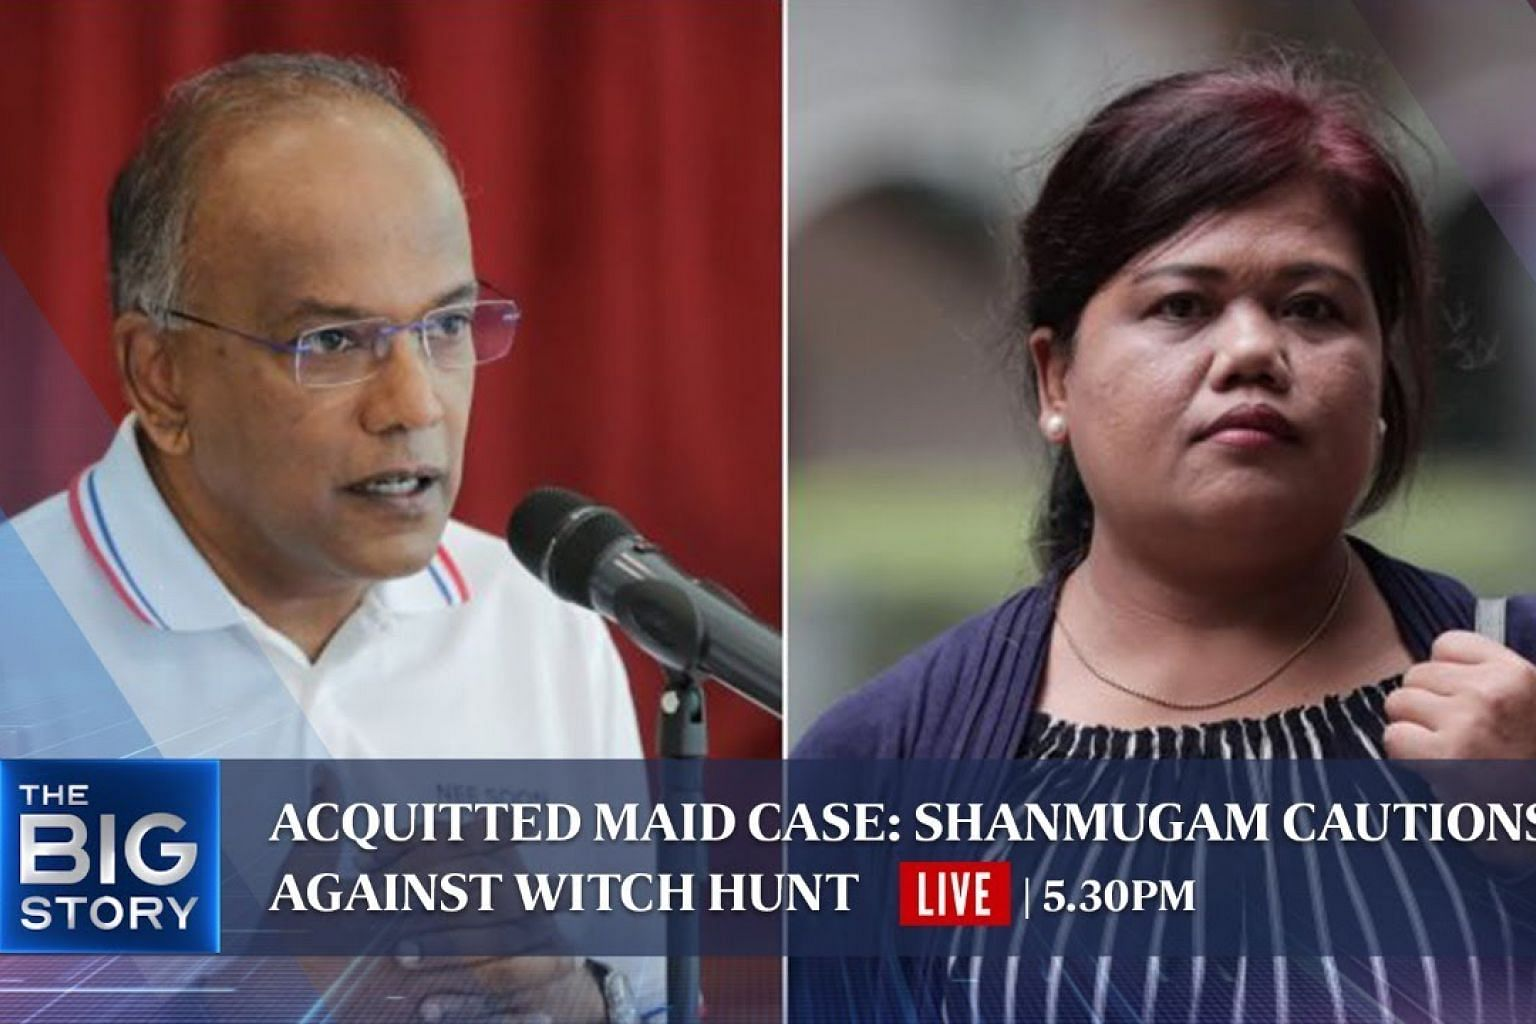 Acquitted maid case: Shanmugam cautions against witch hunt   THE BIG STORY